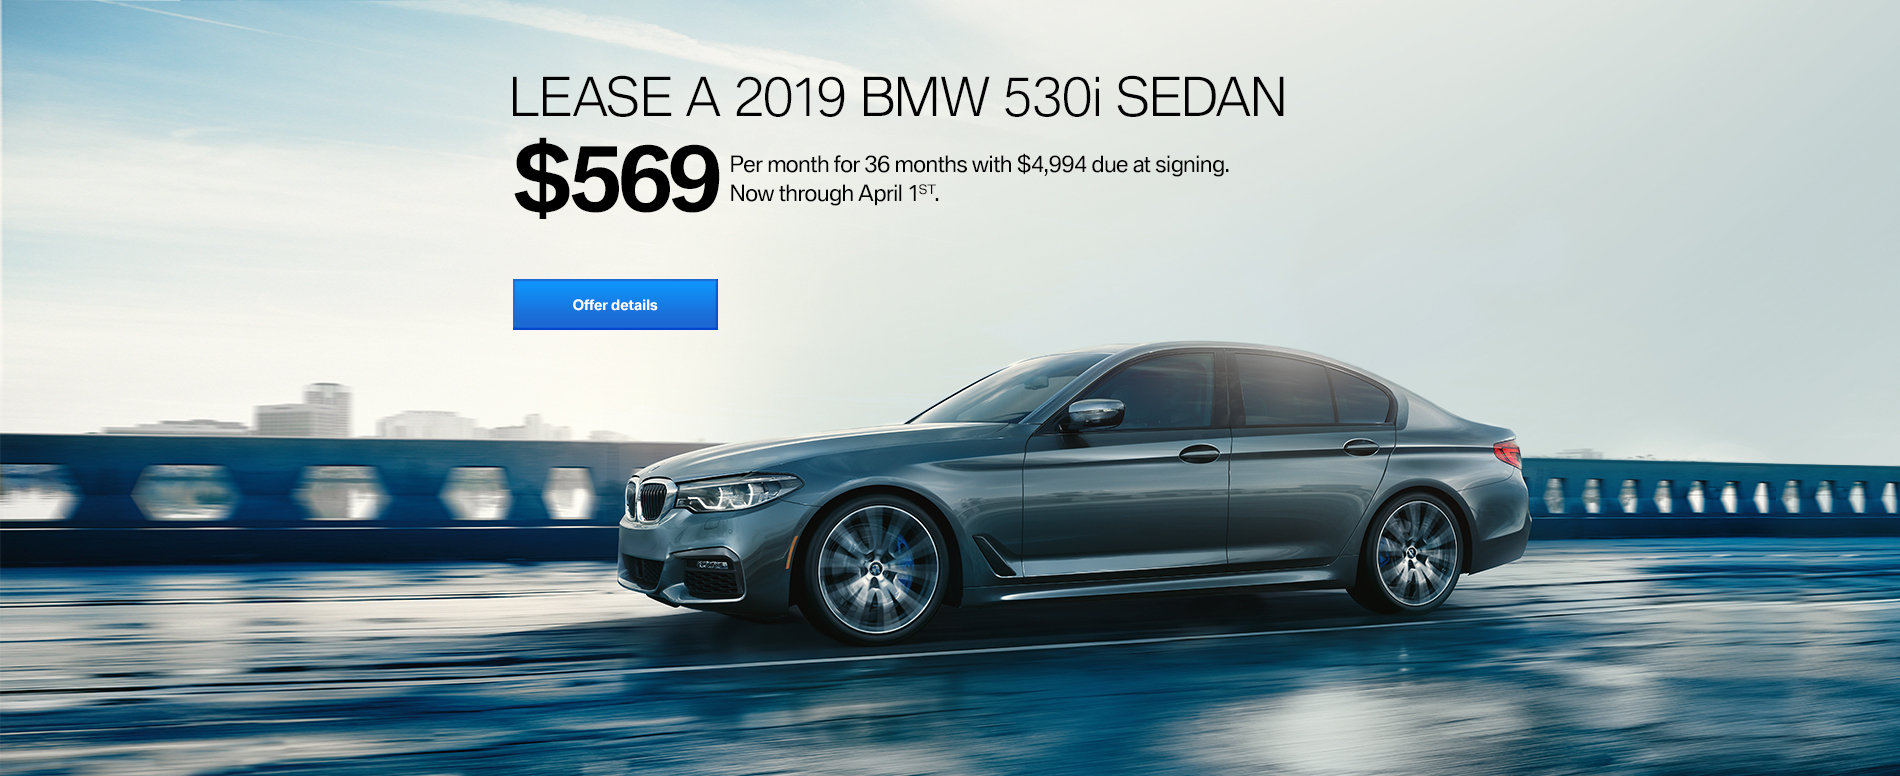 LEASE A 2019 BMW 530i FOR $569/MONTH FOR 36 MONTHS WITH $4,994 D